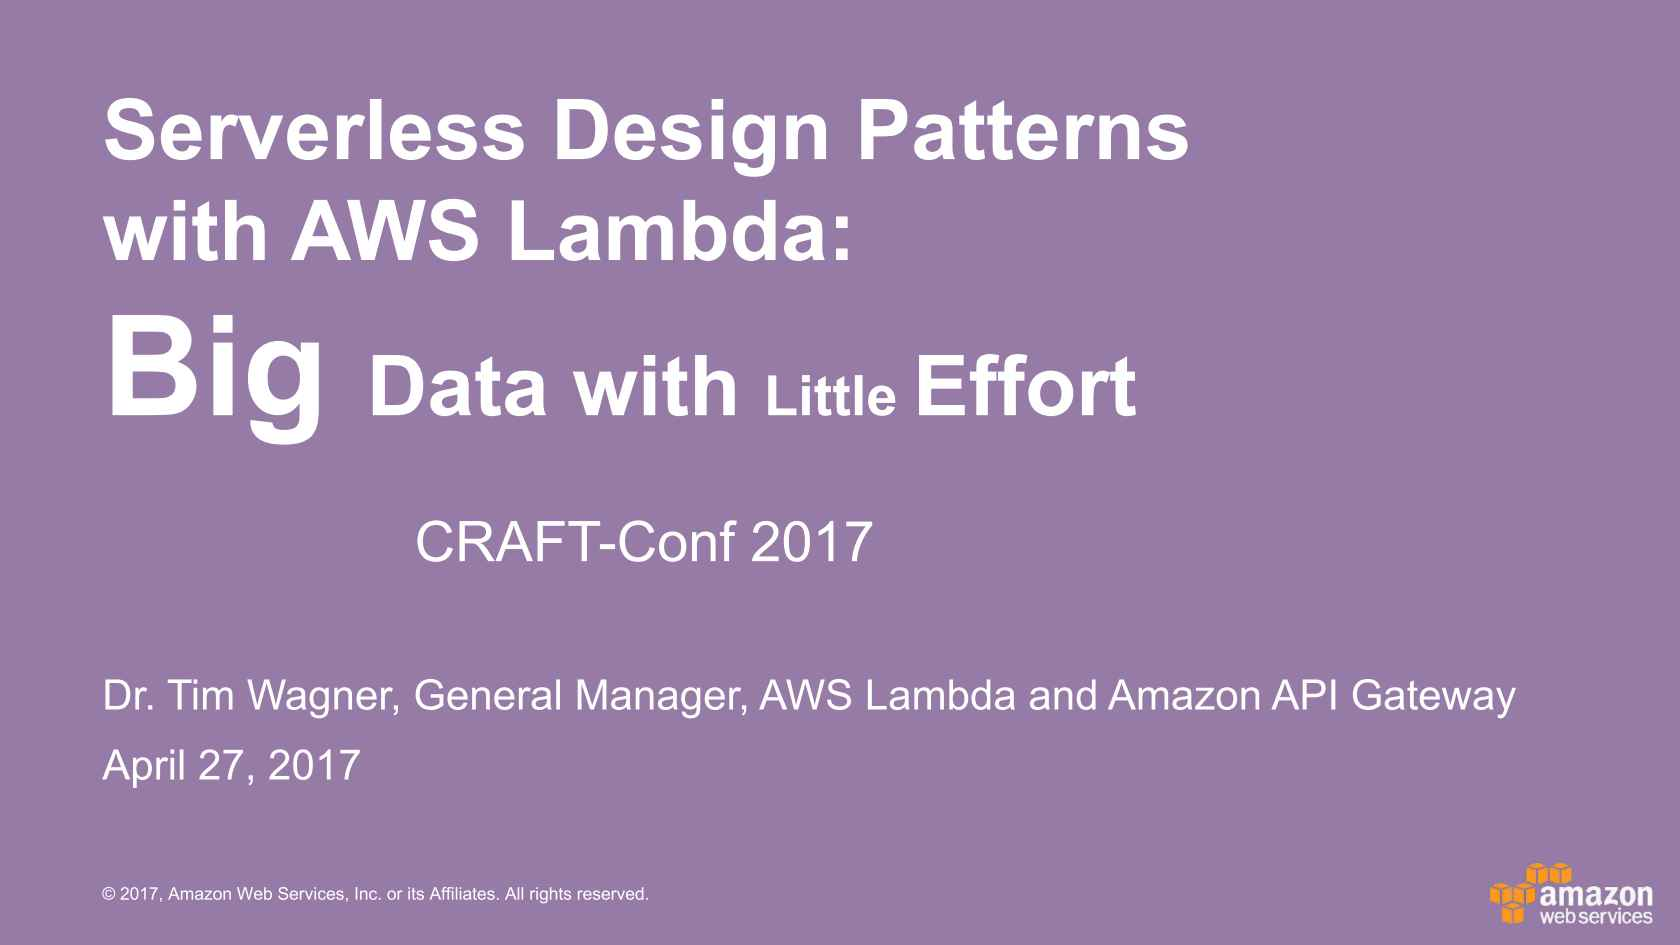 Serverless Design Patterns with AWS Lambda: Big Data with